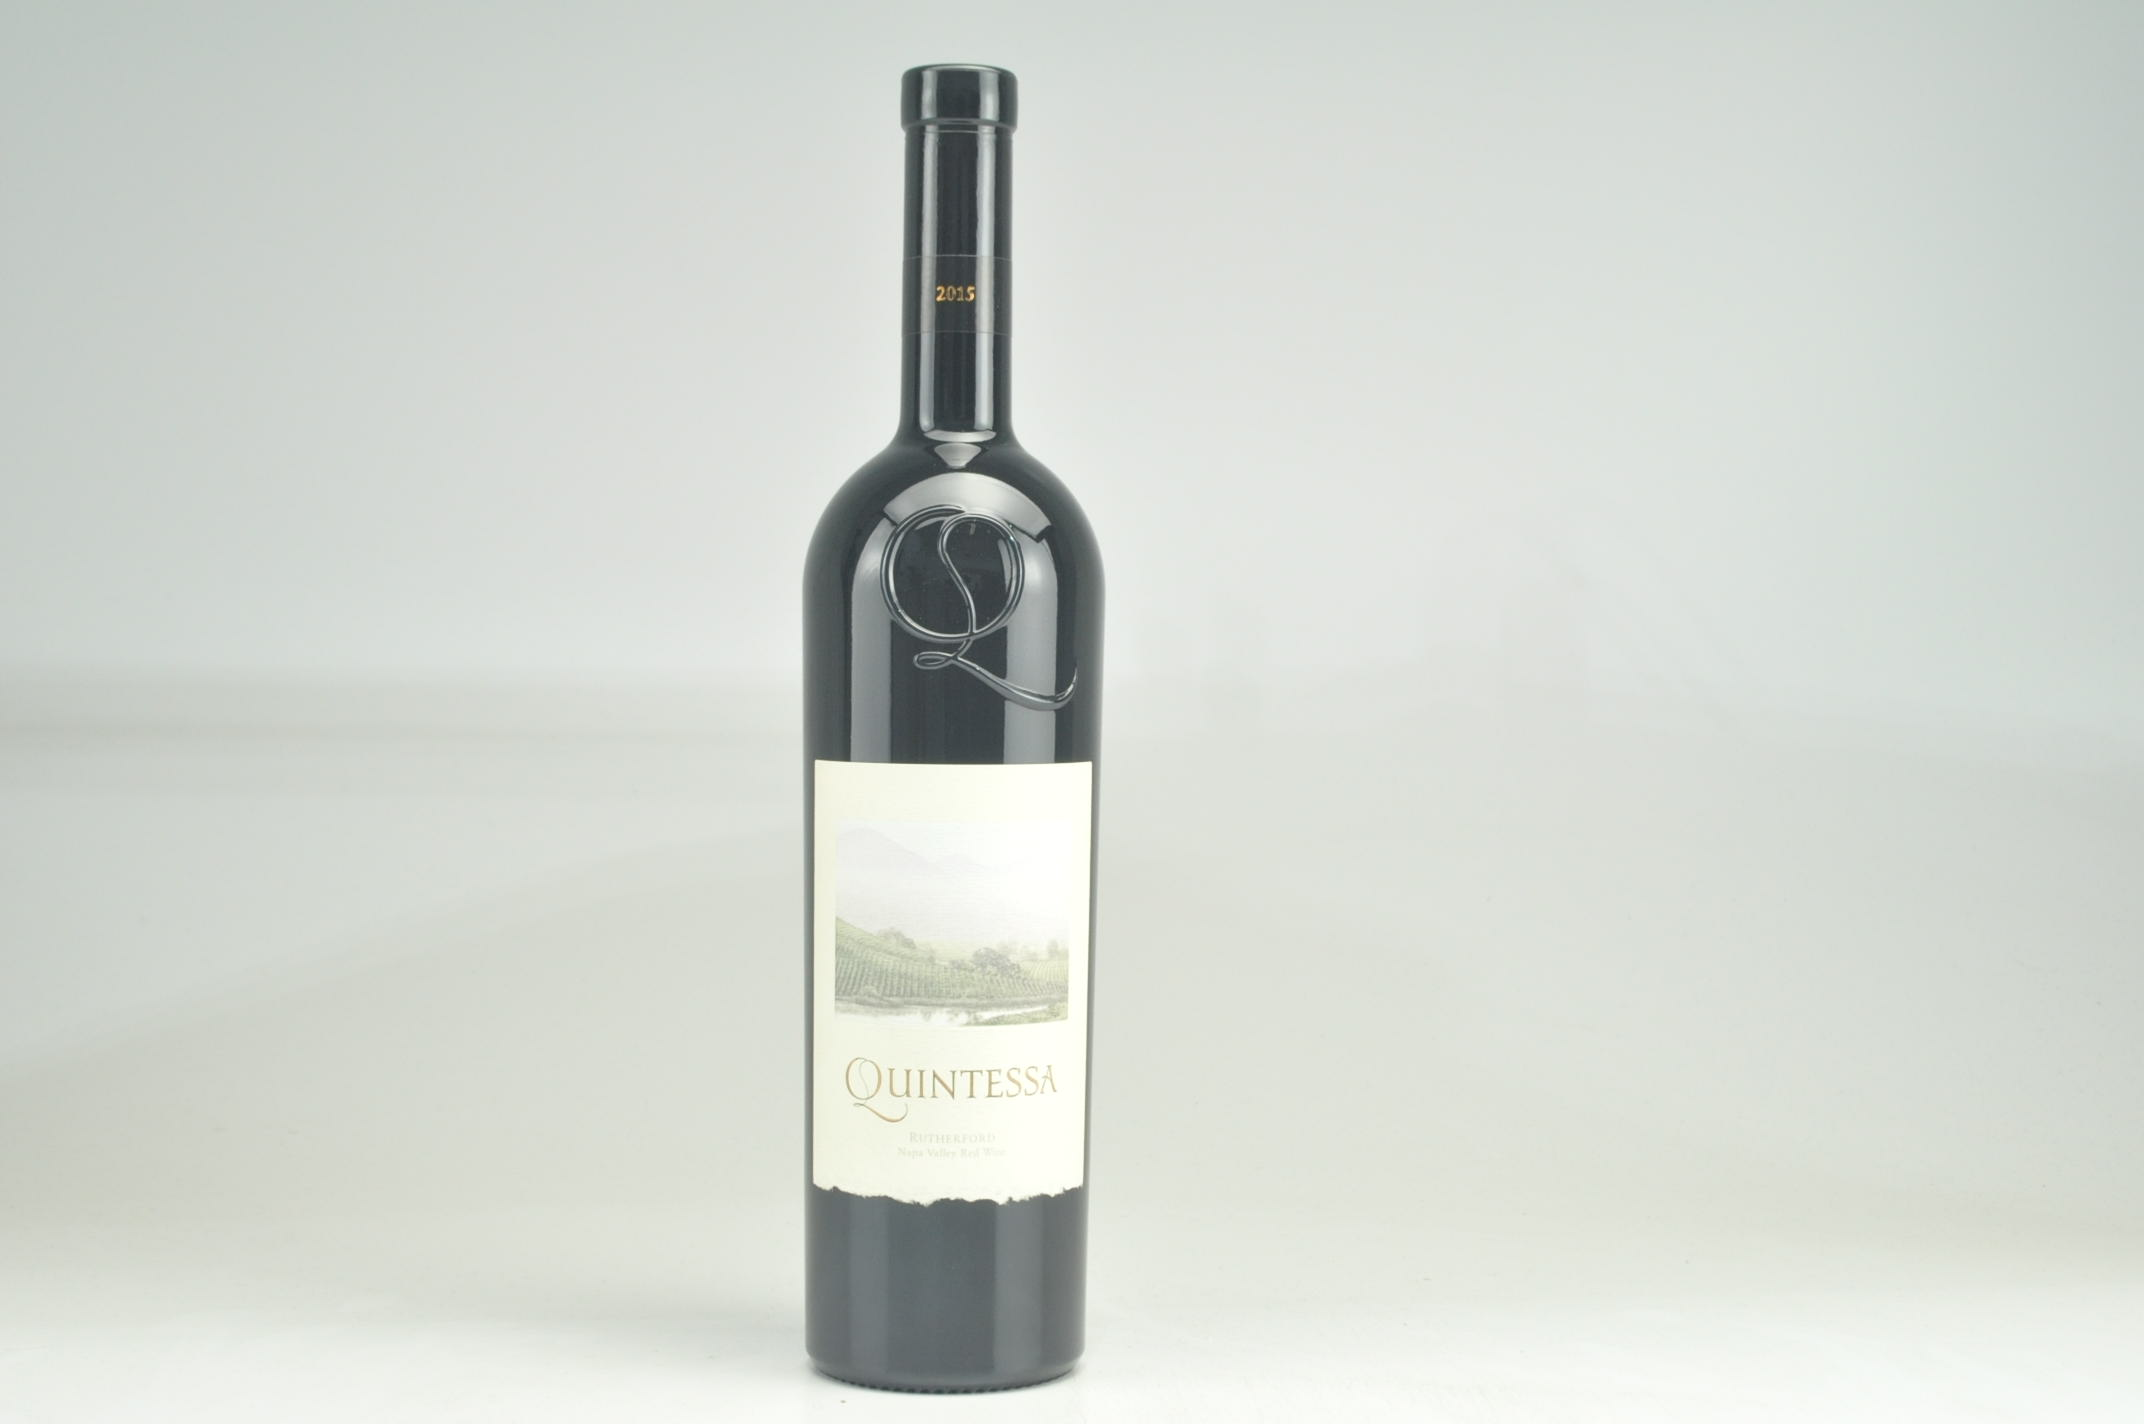 2012 Quintessa Proprietary Red Wine, Rutherford RP--94